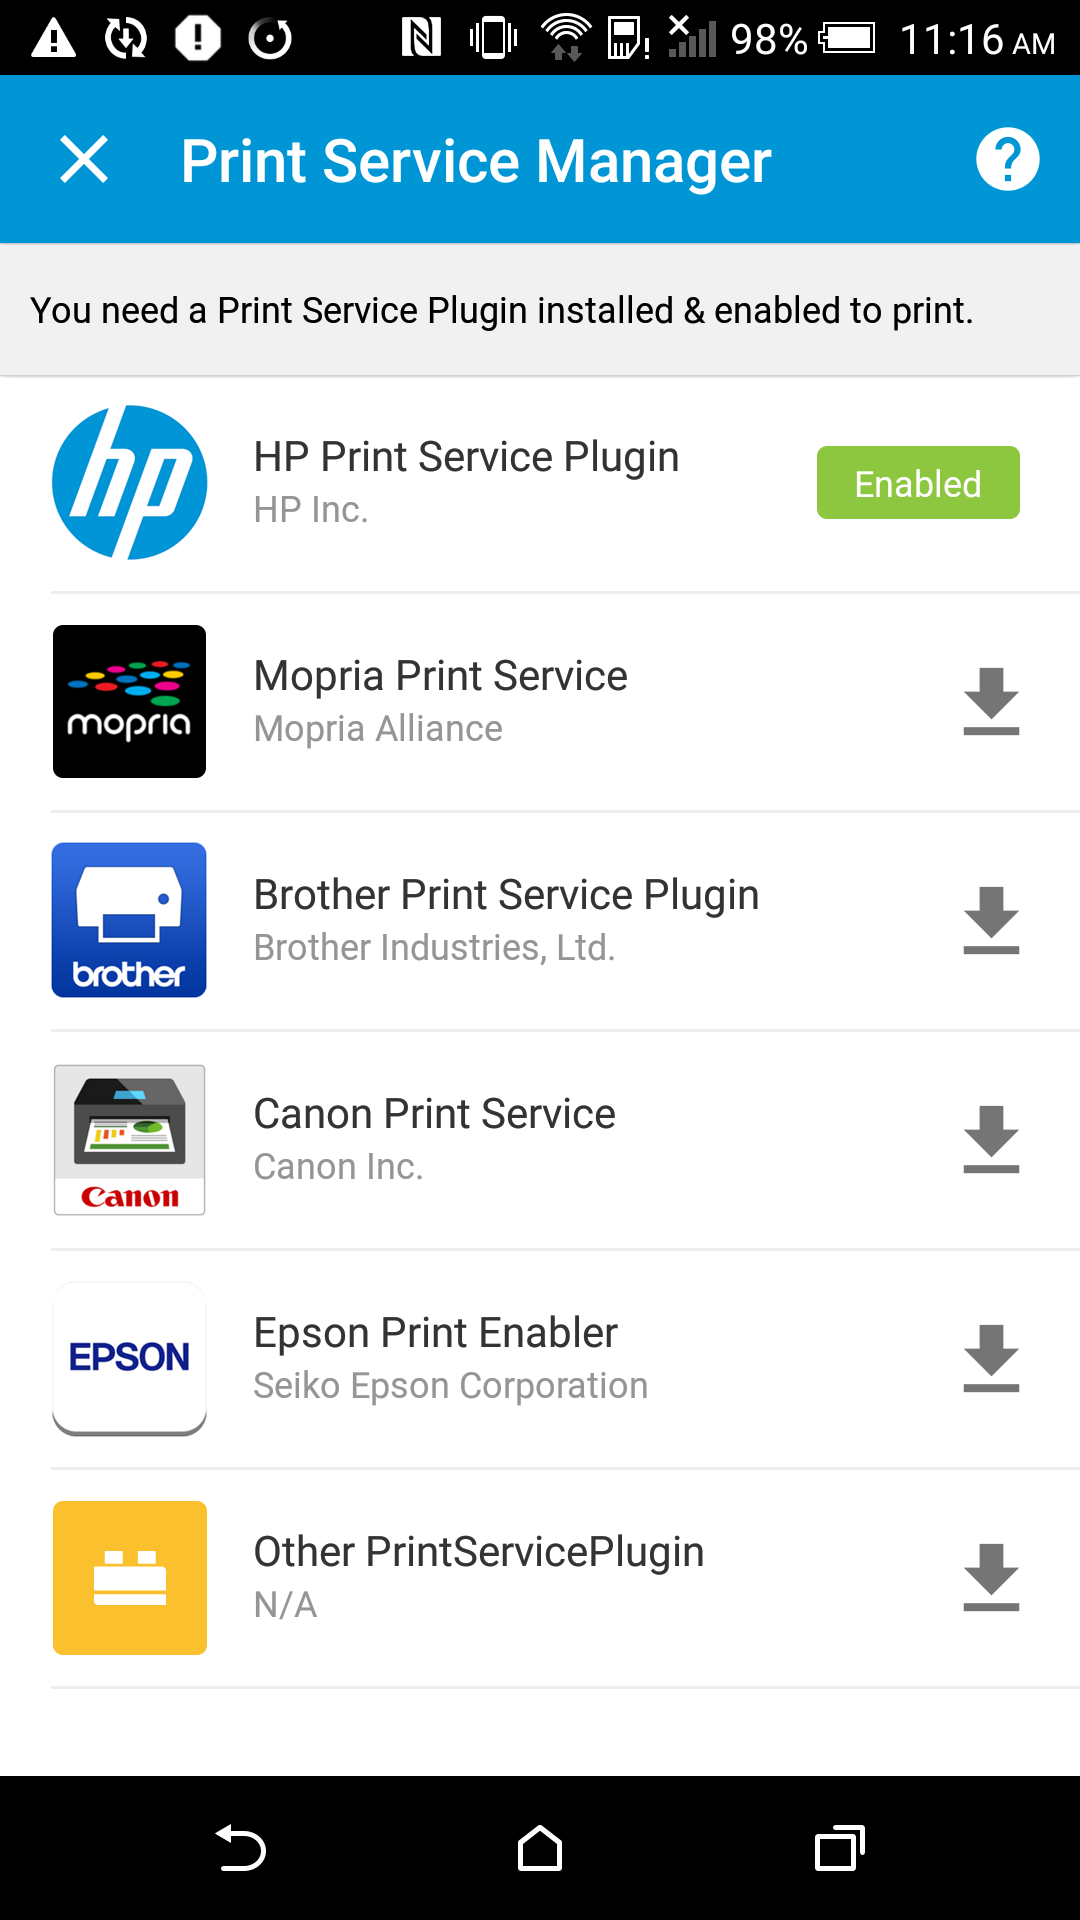 They Are HP Print Sevice Plugin Mopria Service Canon Epson And Brother For Lollipop Above Or